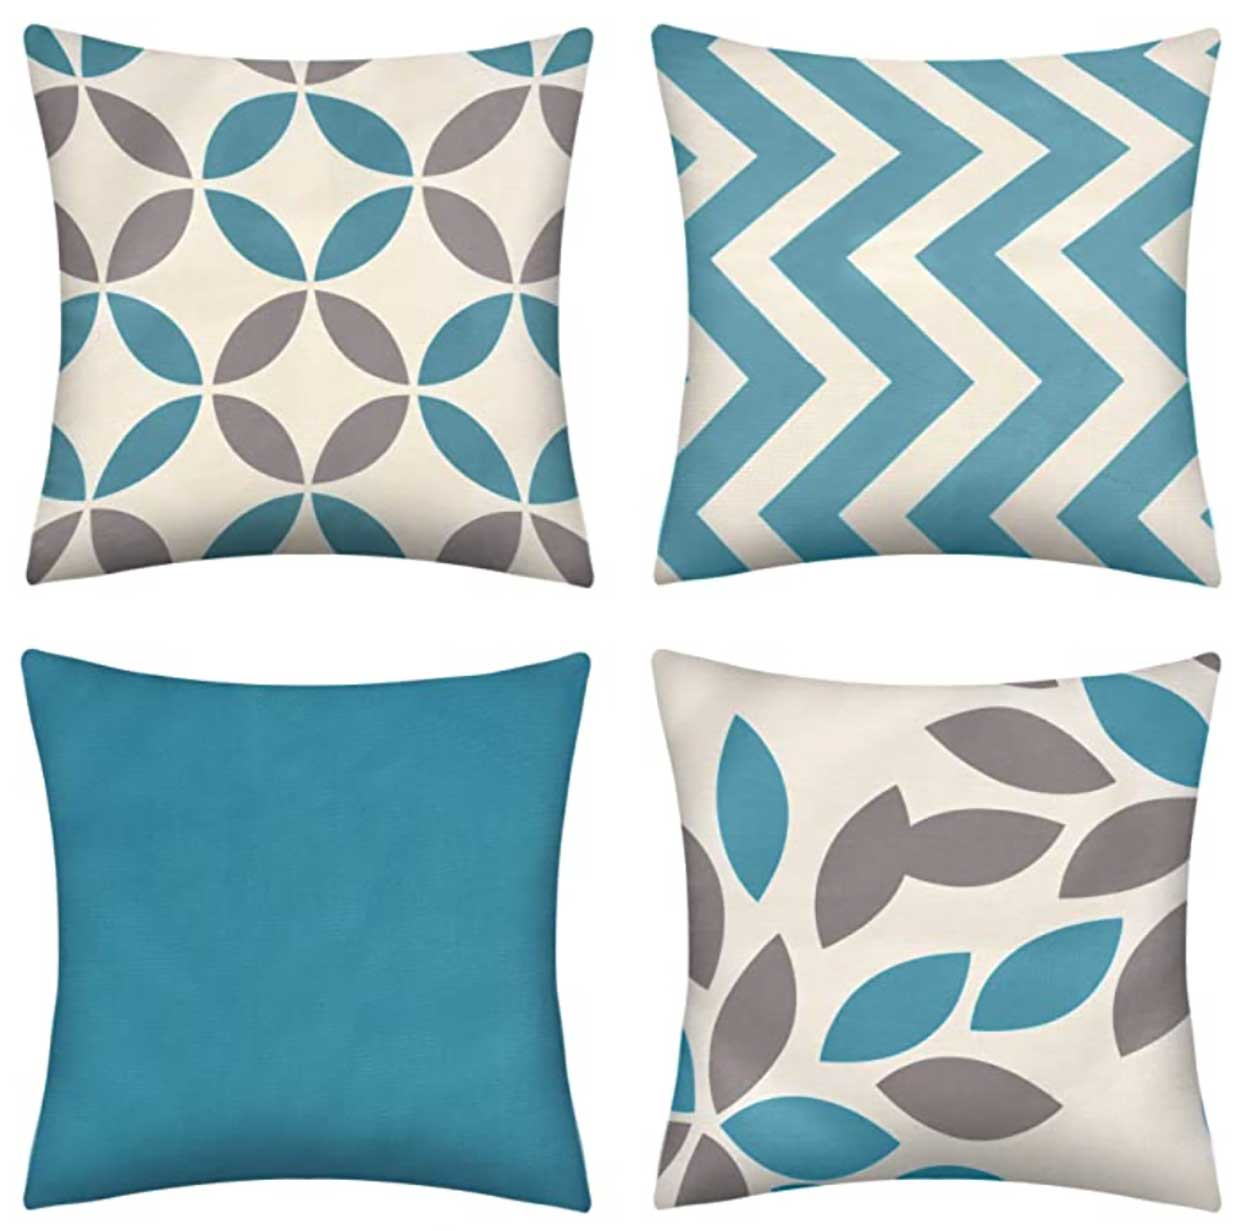 Throw pillow covers with geometric shapes